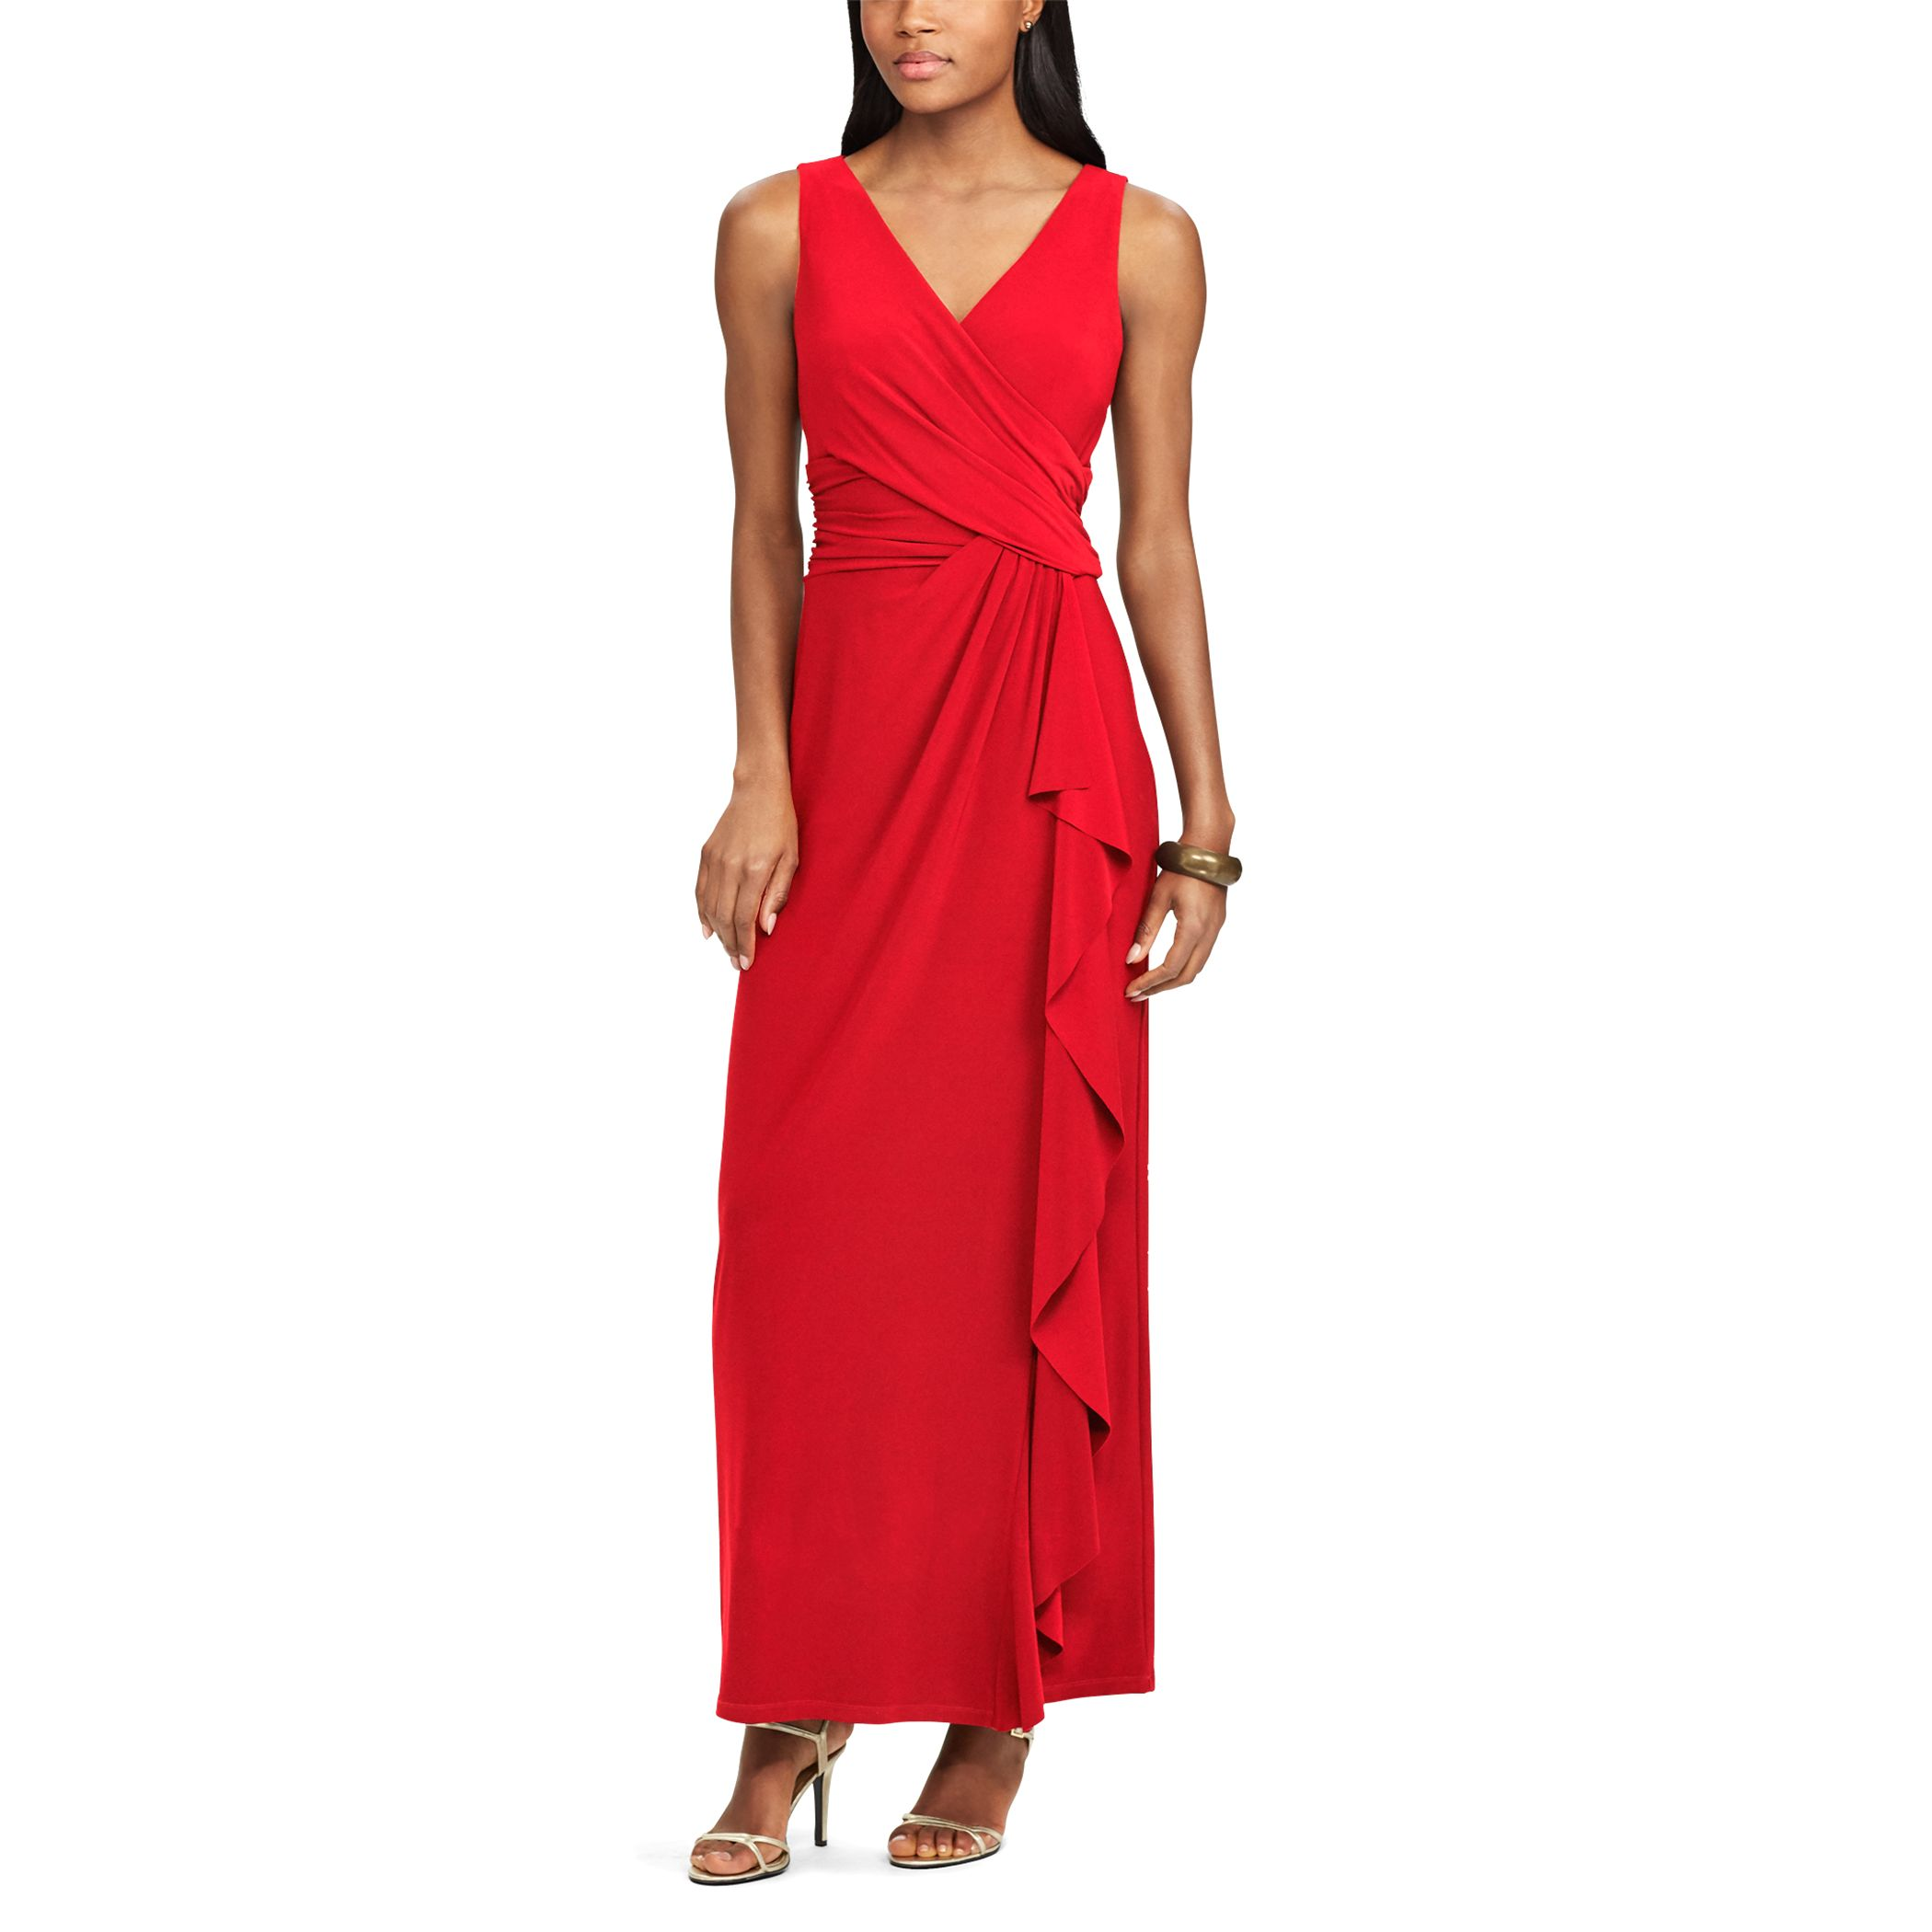 JCPenney Red Evening Dresses S